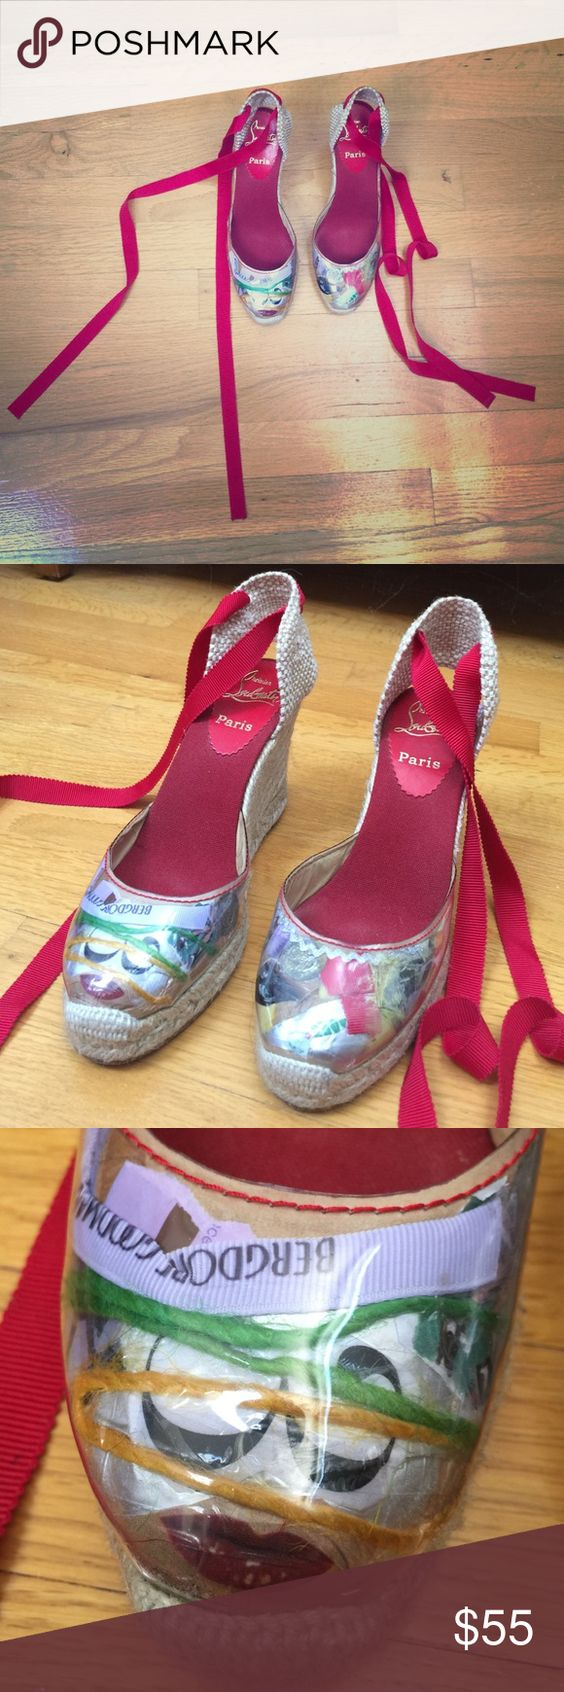 Shoes size 8. Lightly worn on bottom. Shoe size not listed but measure approx size 8. Christian Louboutin. Christian Louboutin Shoes Sandals